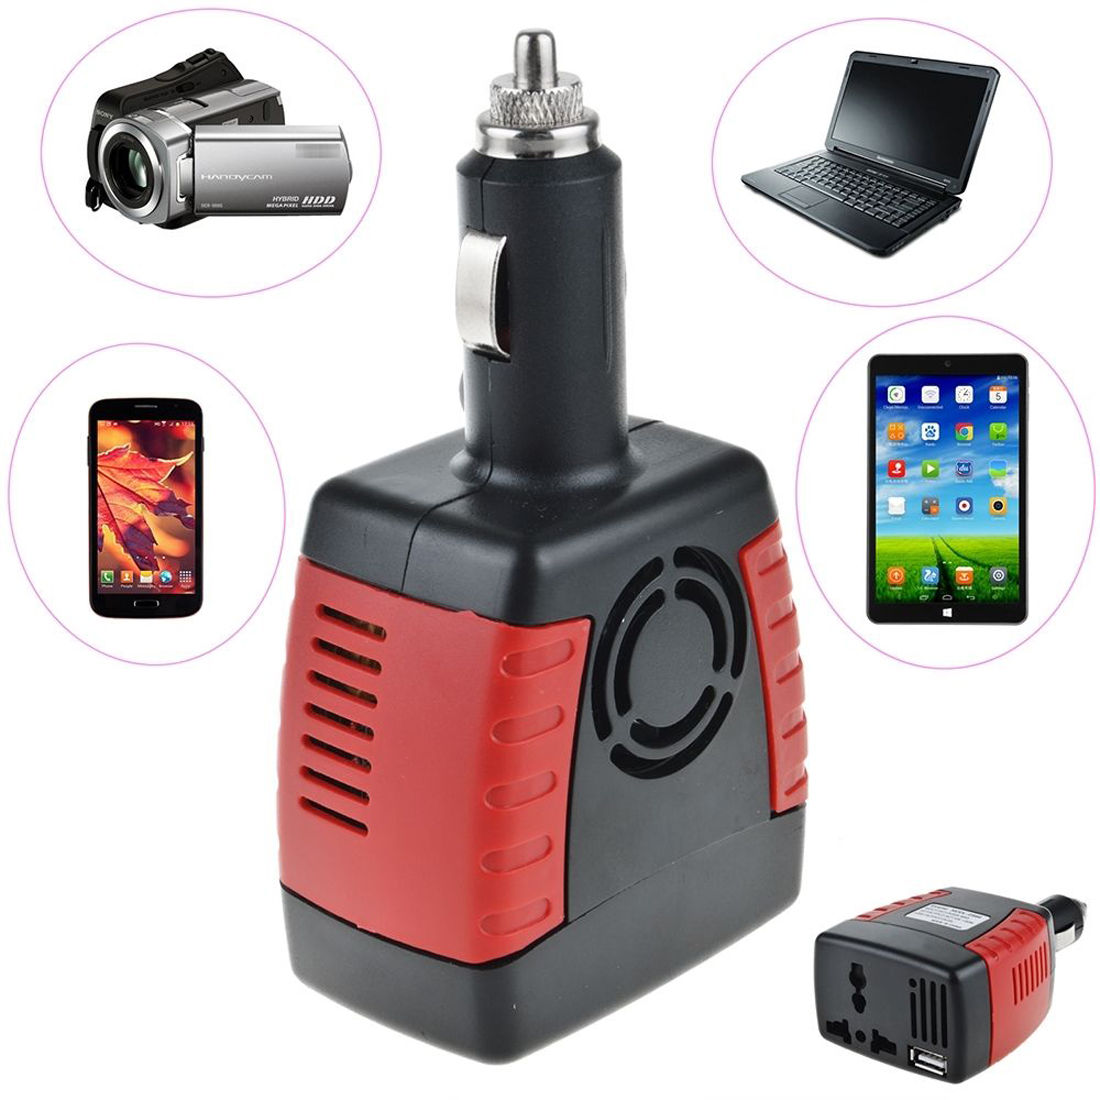 New High Quality Lighter Power Supply 150W 12V DC to 220V AC +USB 5V Car Power Inverter Adapter(China (Mainland))